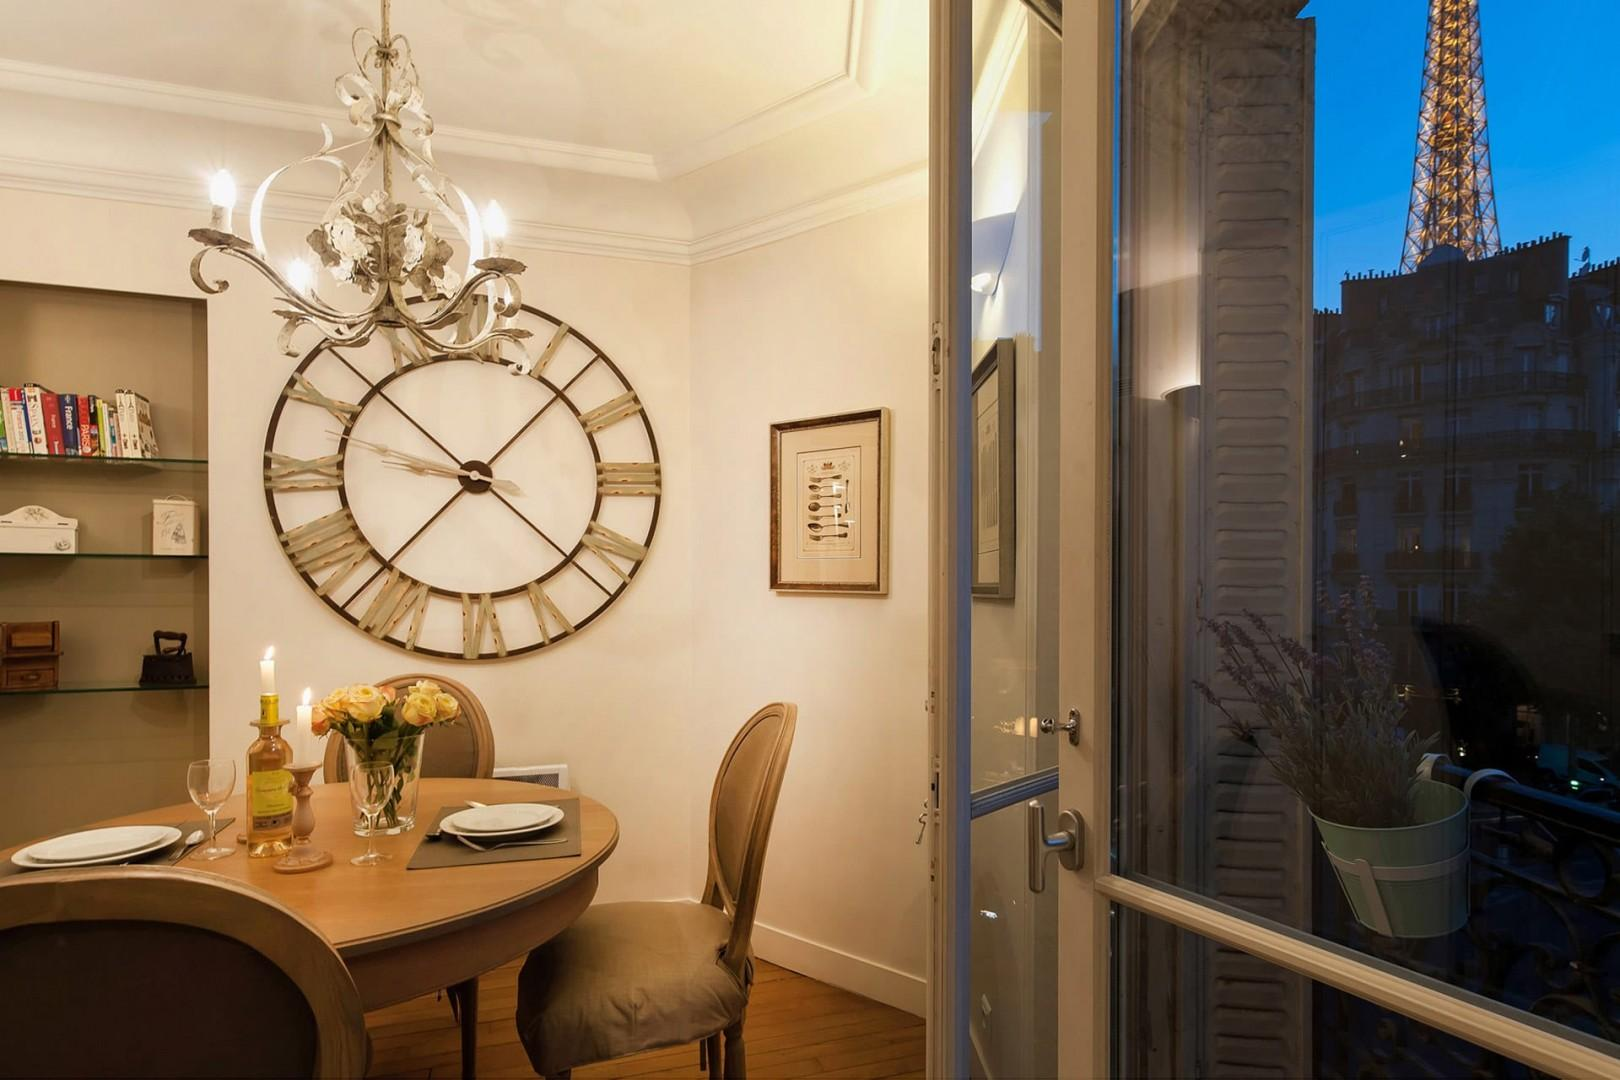 Enjoy stunning views of the Eiffel Tower from the kitchen.